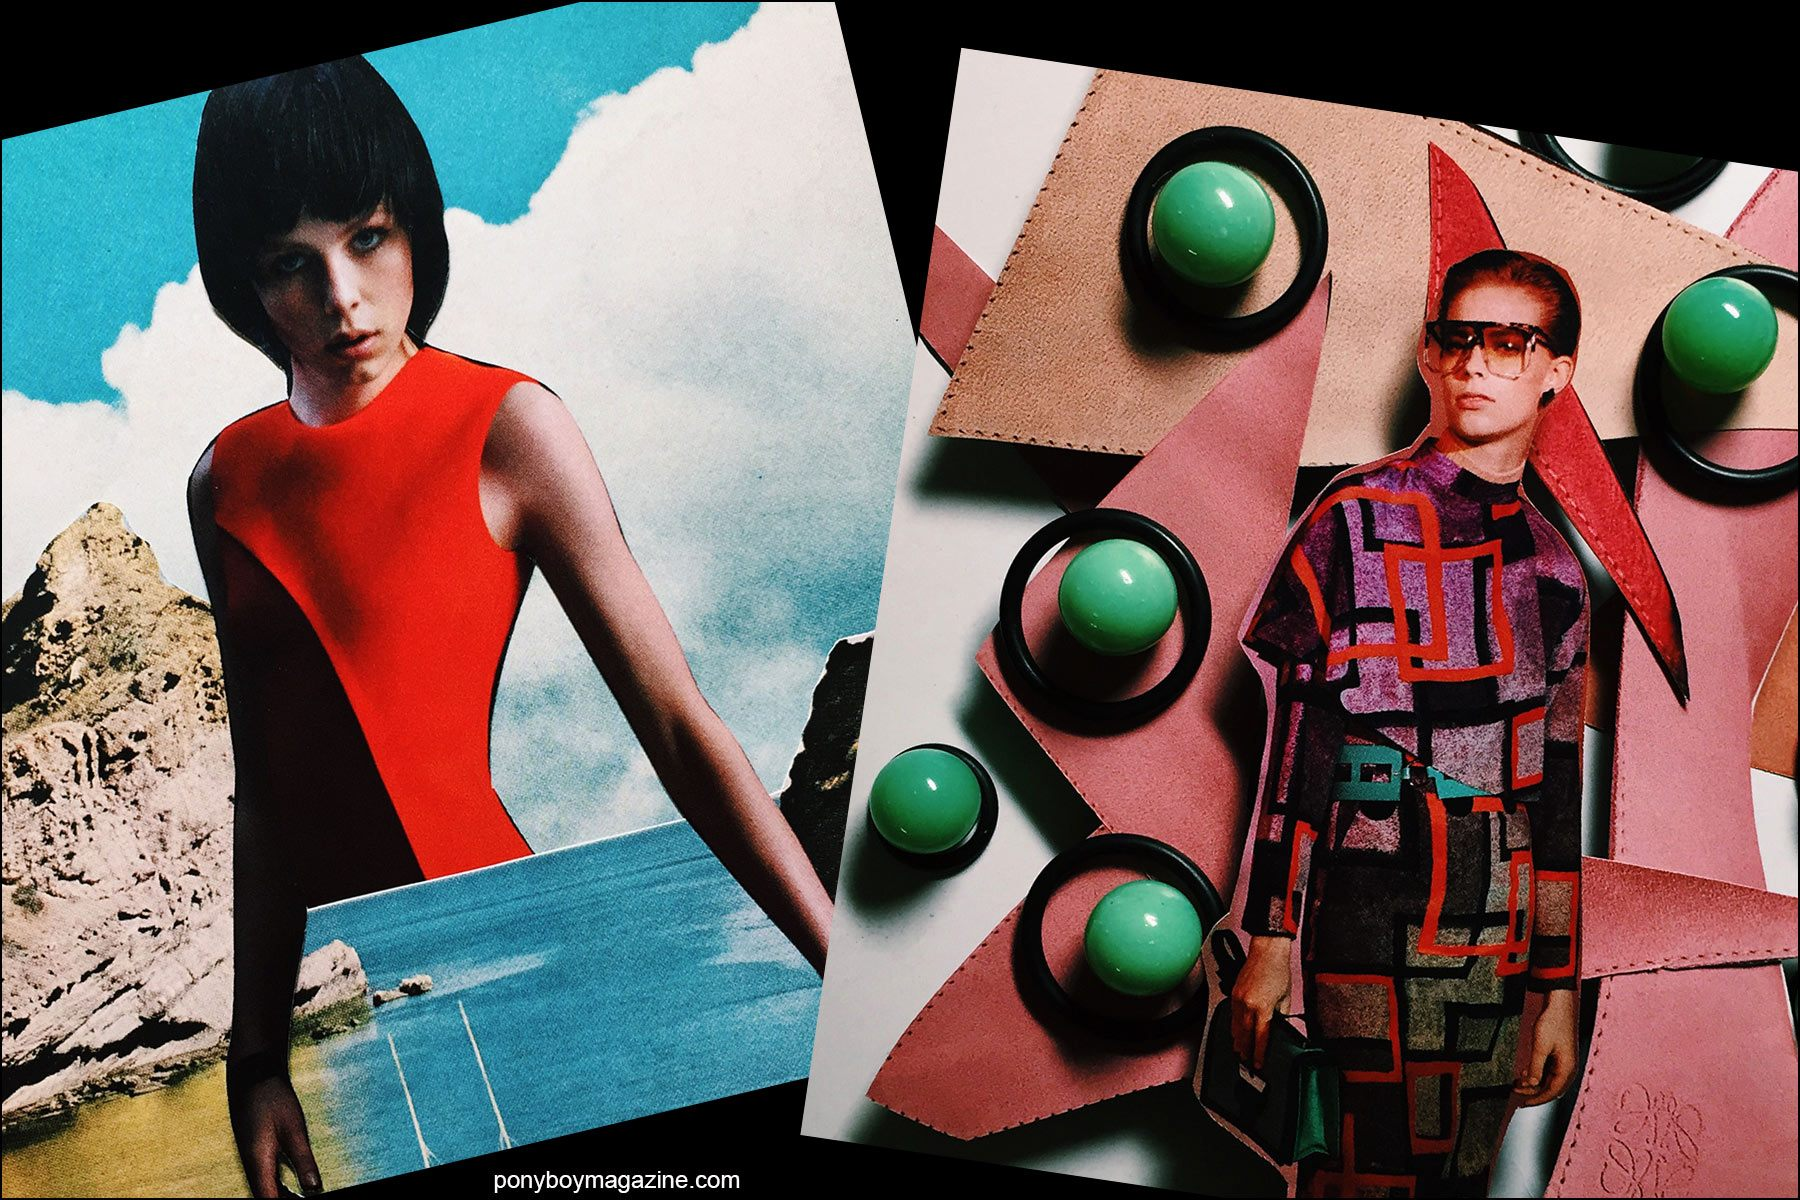 Collage artwork of Hugo Boss and Loewe images by Patrick Keohane for RS Theory. Ponyboy magazine NY.